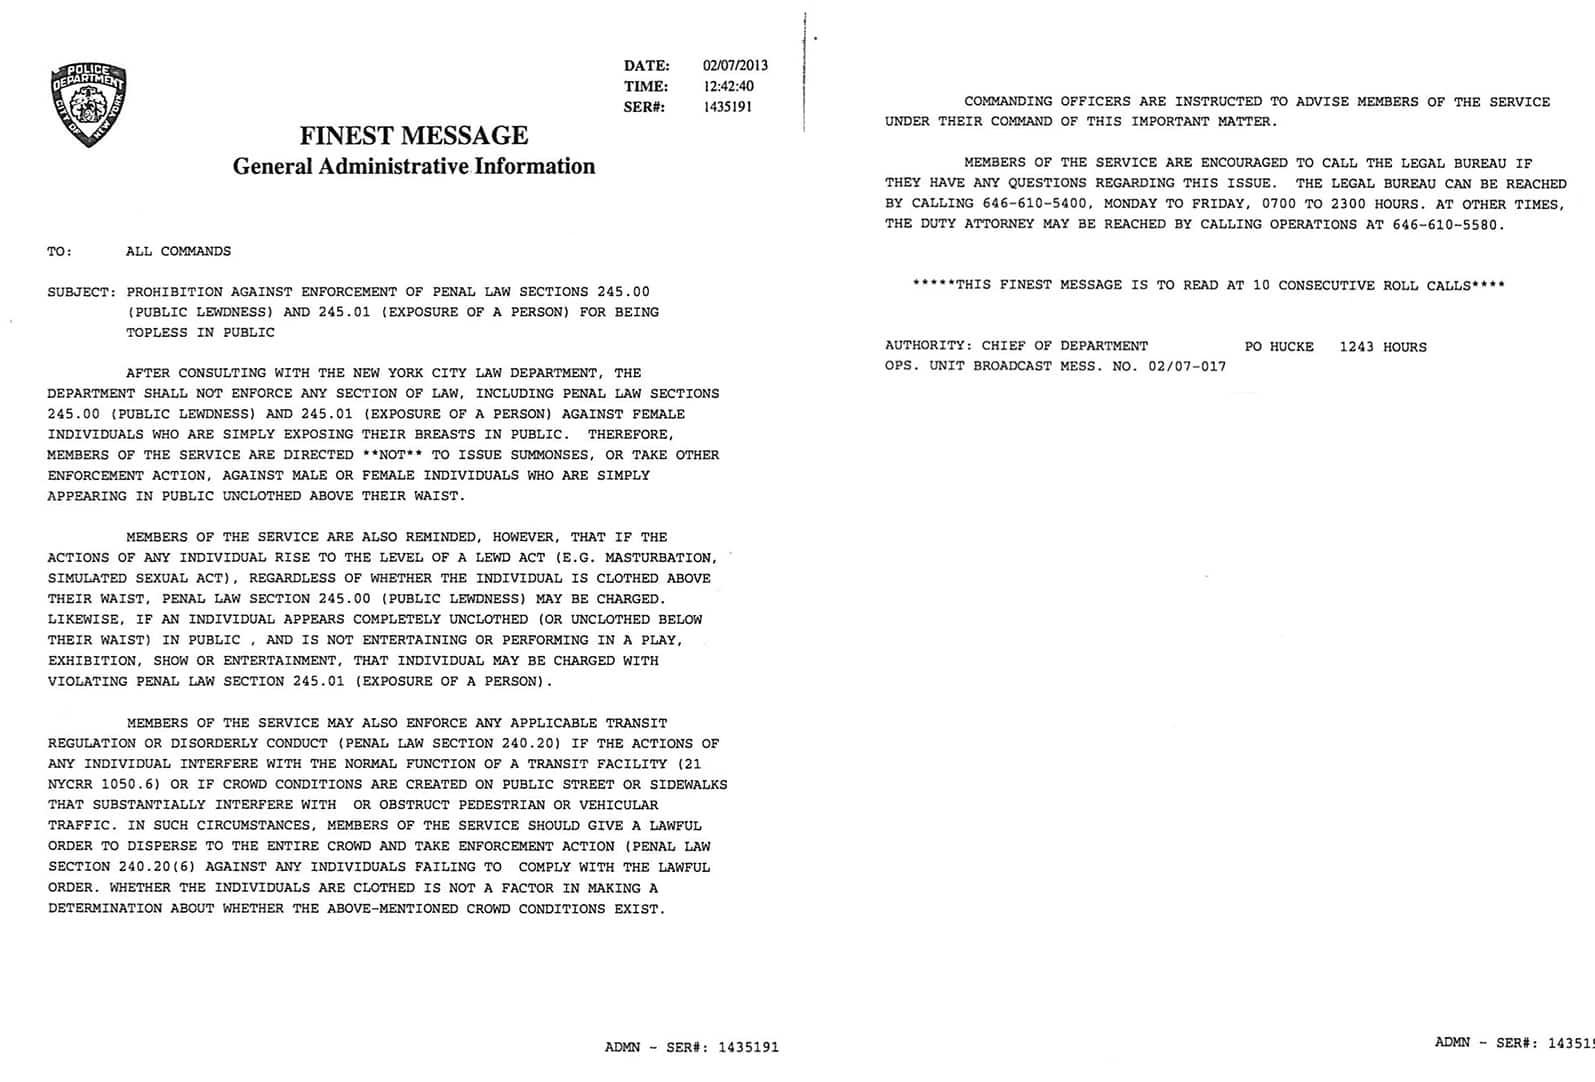 NYPD 2013 Memo About Topless Laws in New York